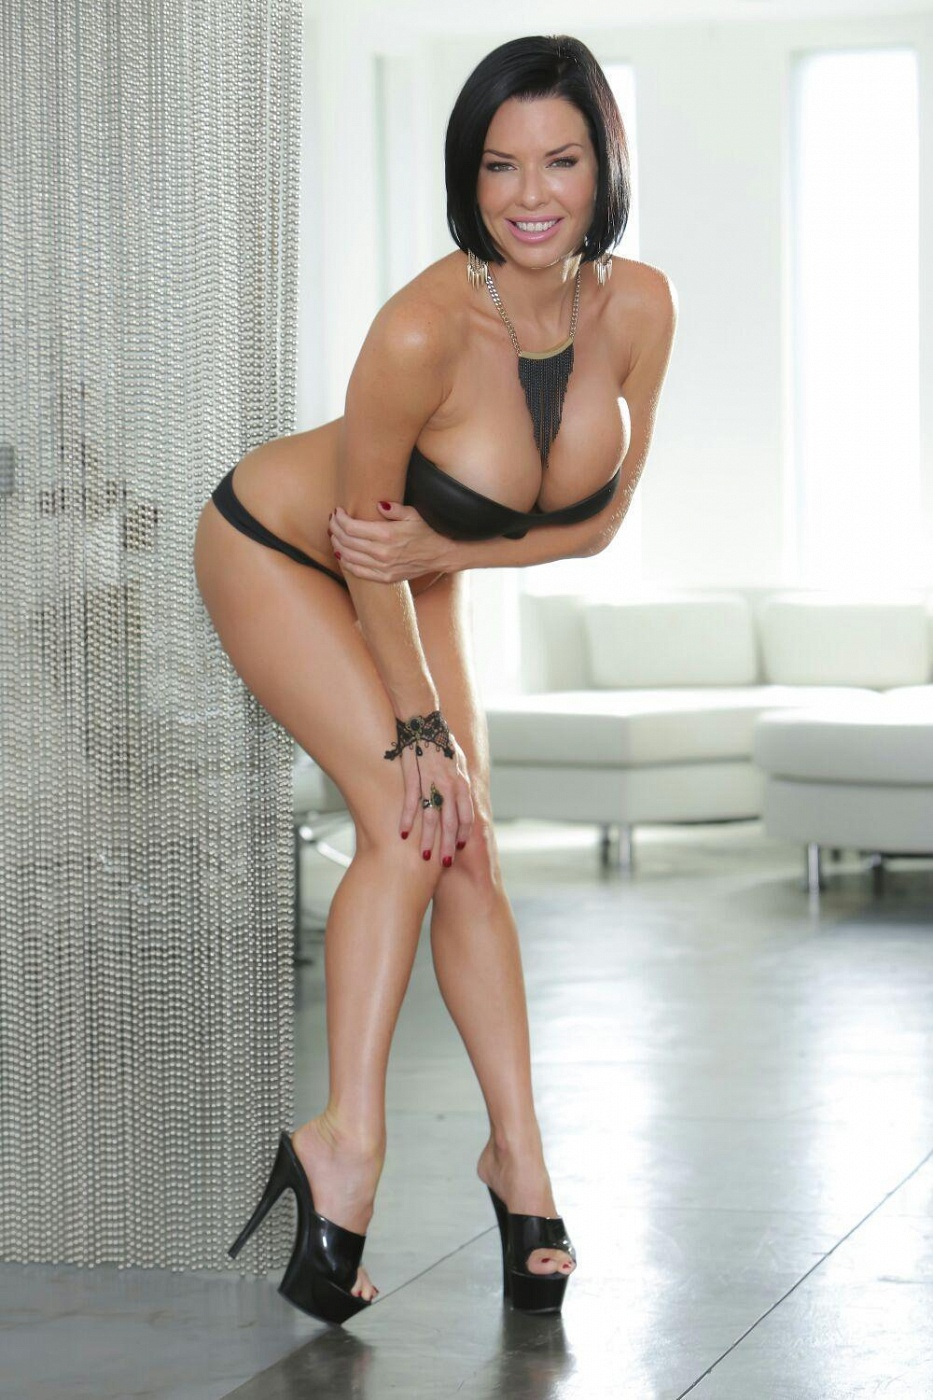 Porn SuperStar Veronica Avluv